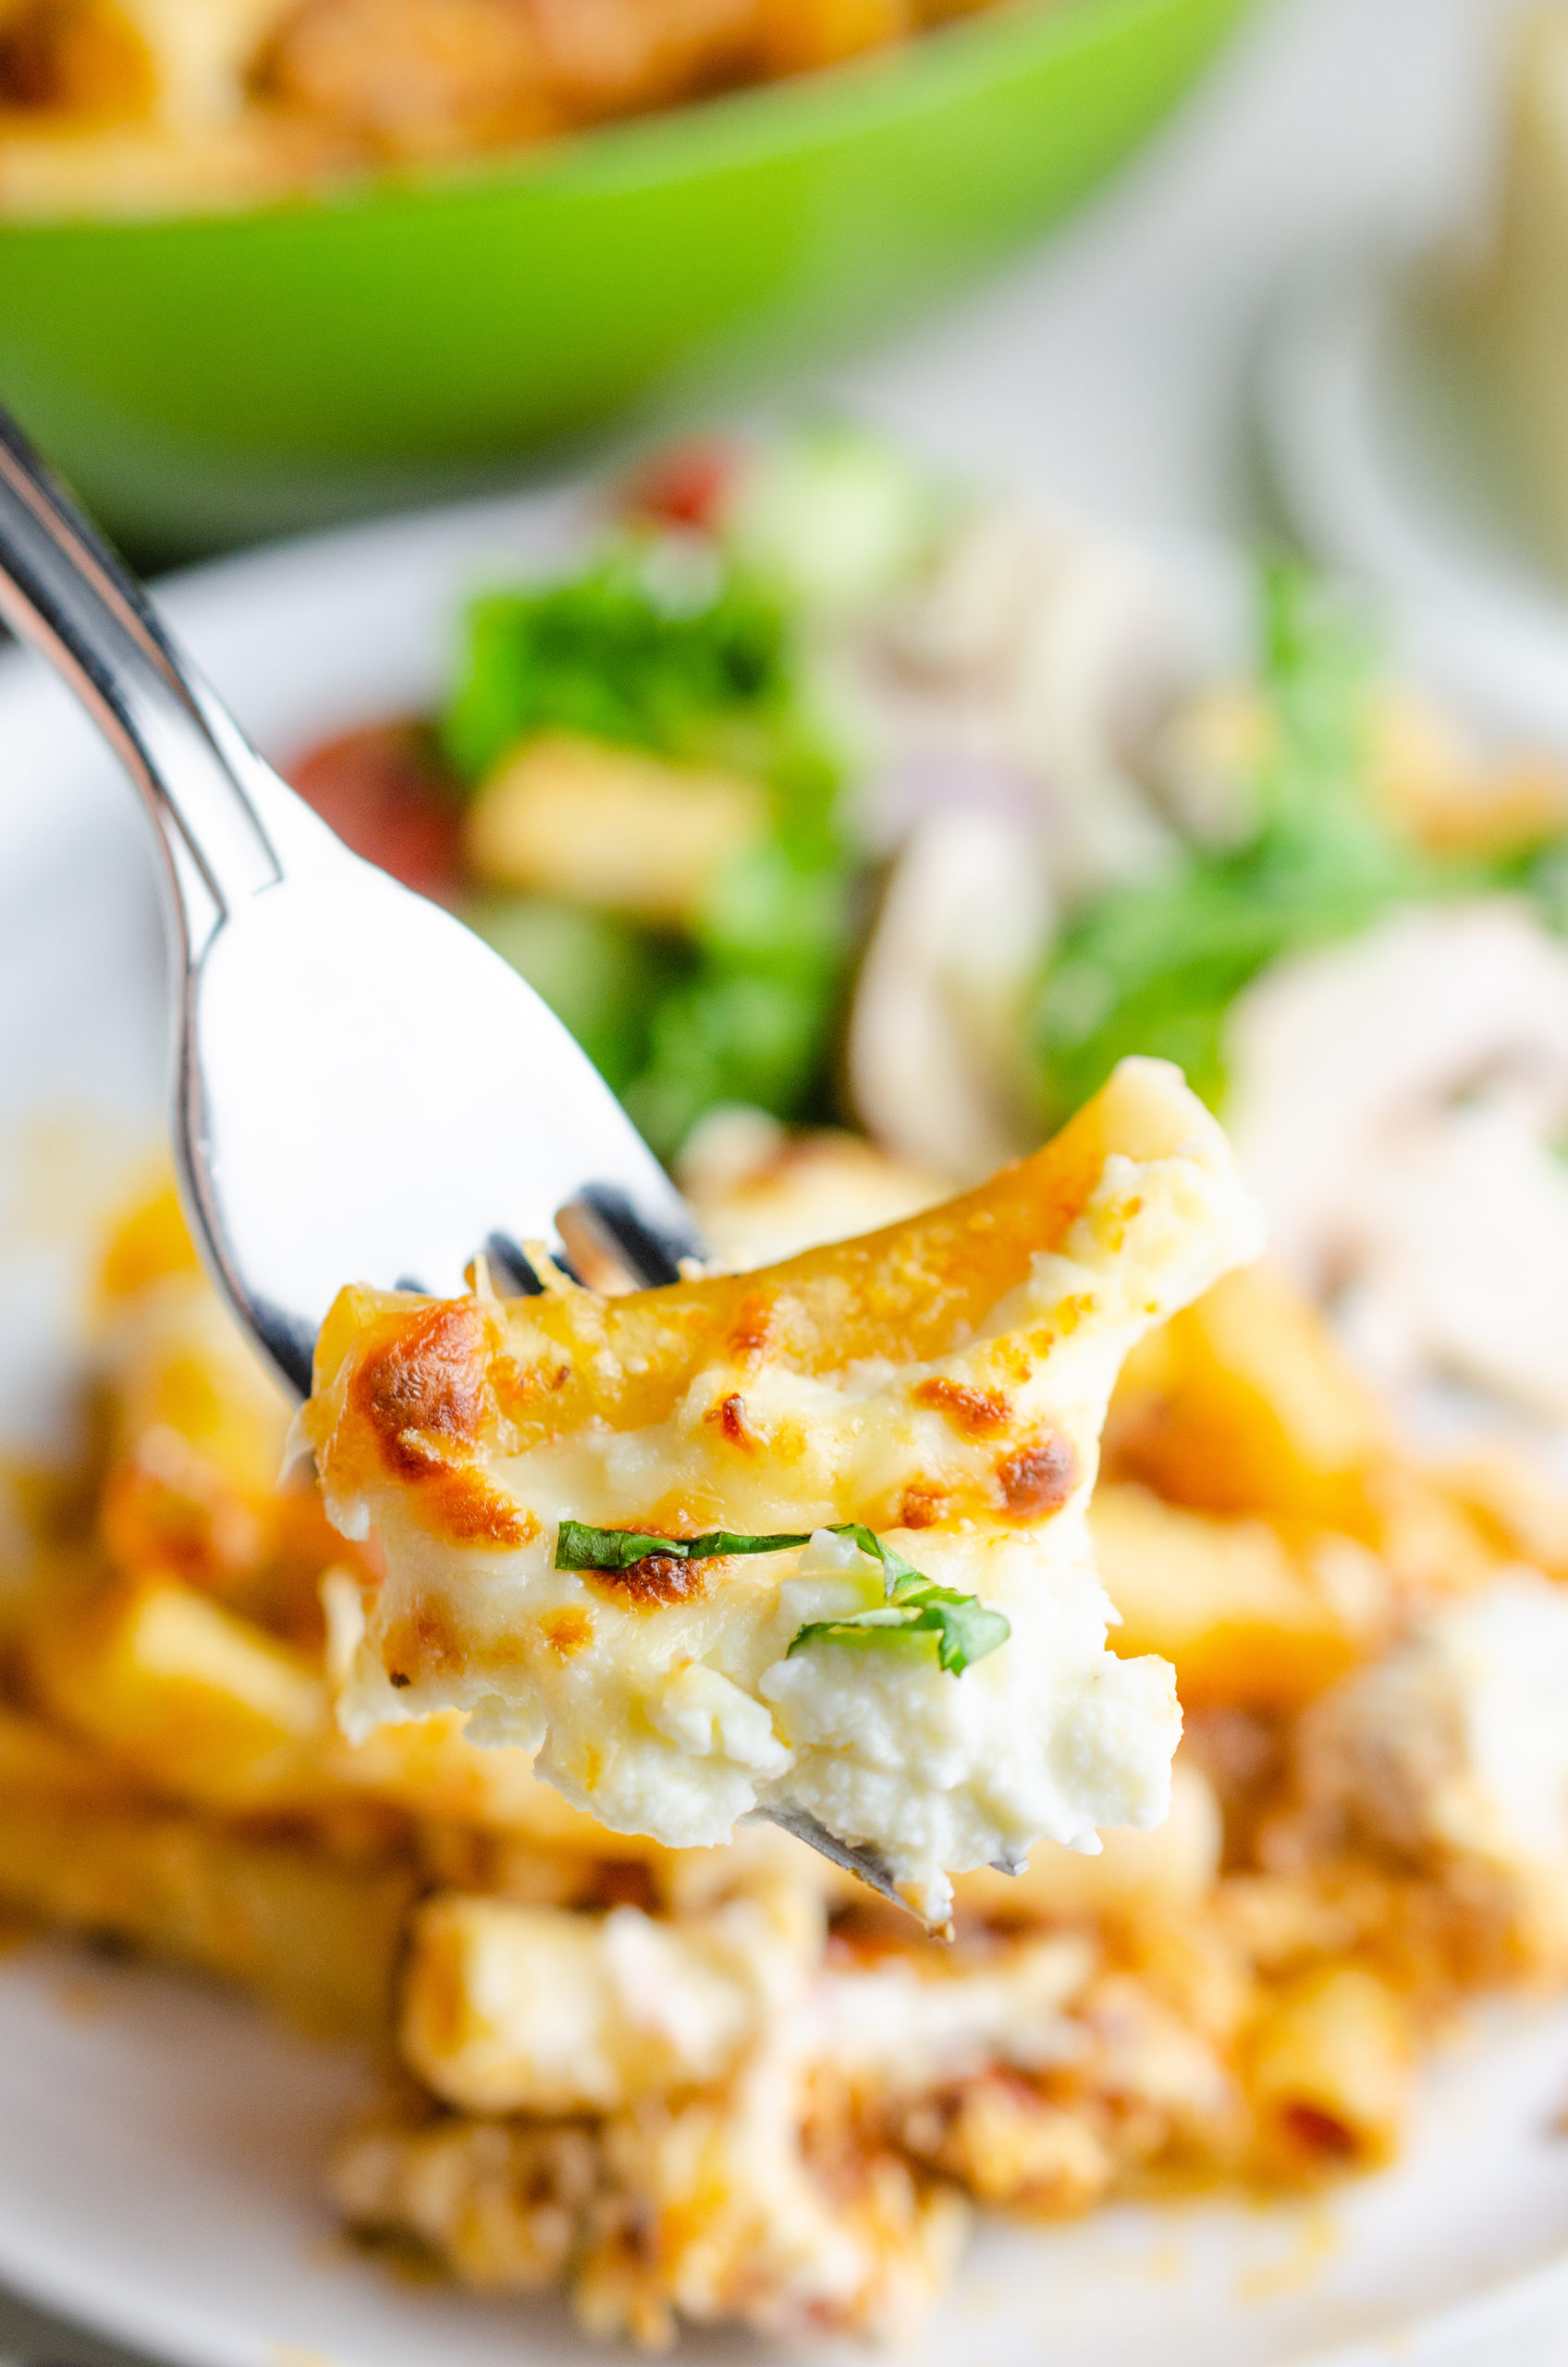 Cooked pasta with cheese on a fork.